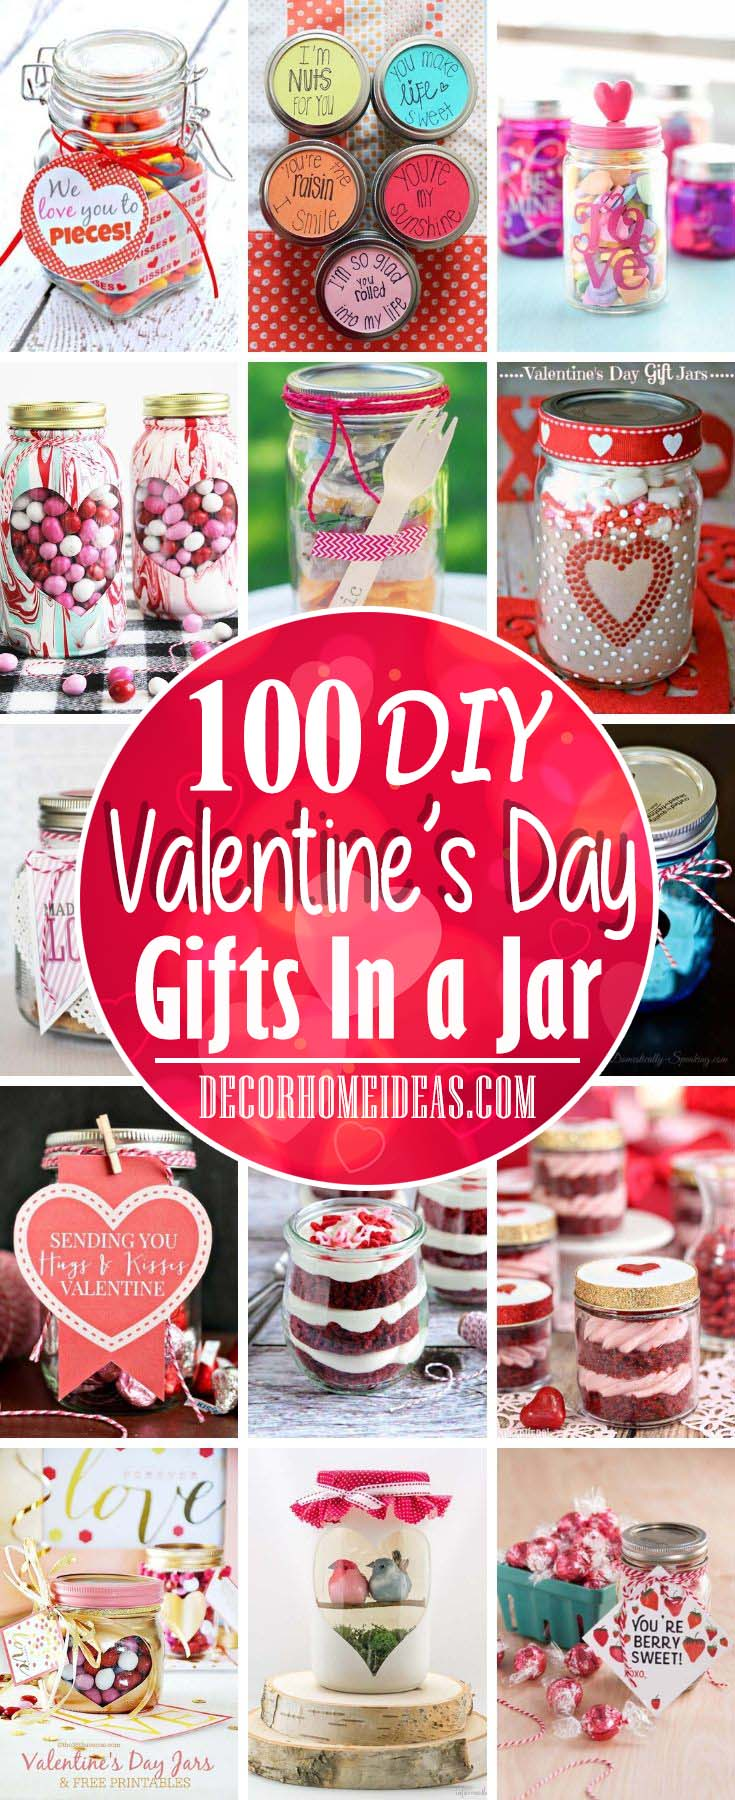 Best DIY Valentine's Day Gifts In A Jar. Make your loved one a gift in a jar with these collection of DIY tutorials. #diy #valentinesday #jar #gift #decorhomeideas